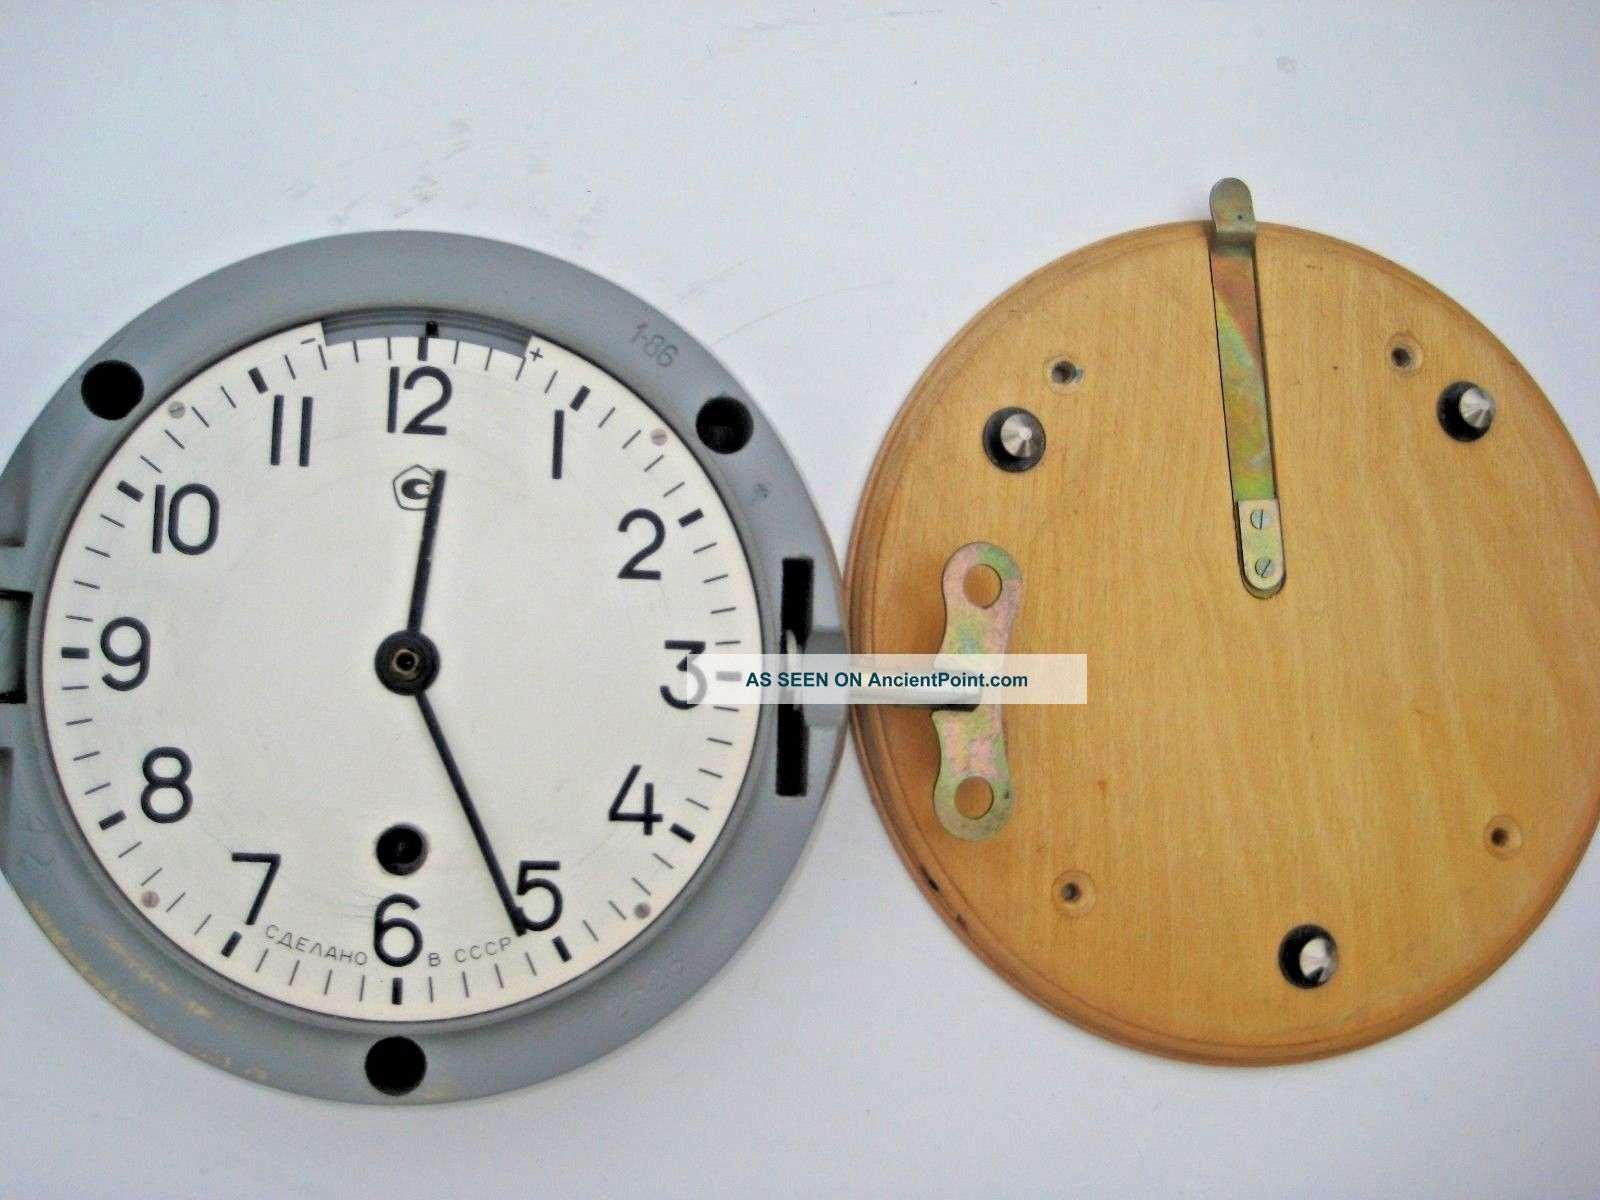 Soviet Russian Vostok Boat/ship Submarine Navy Cabin Clock Clocks photo